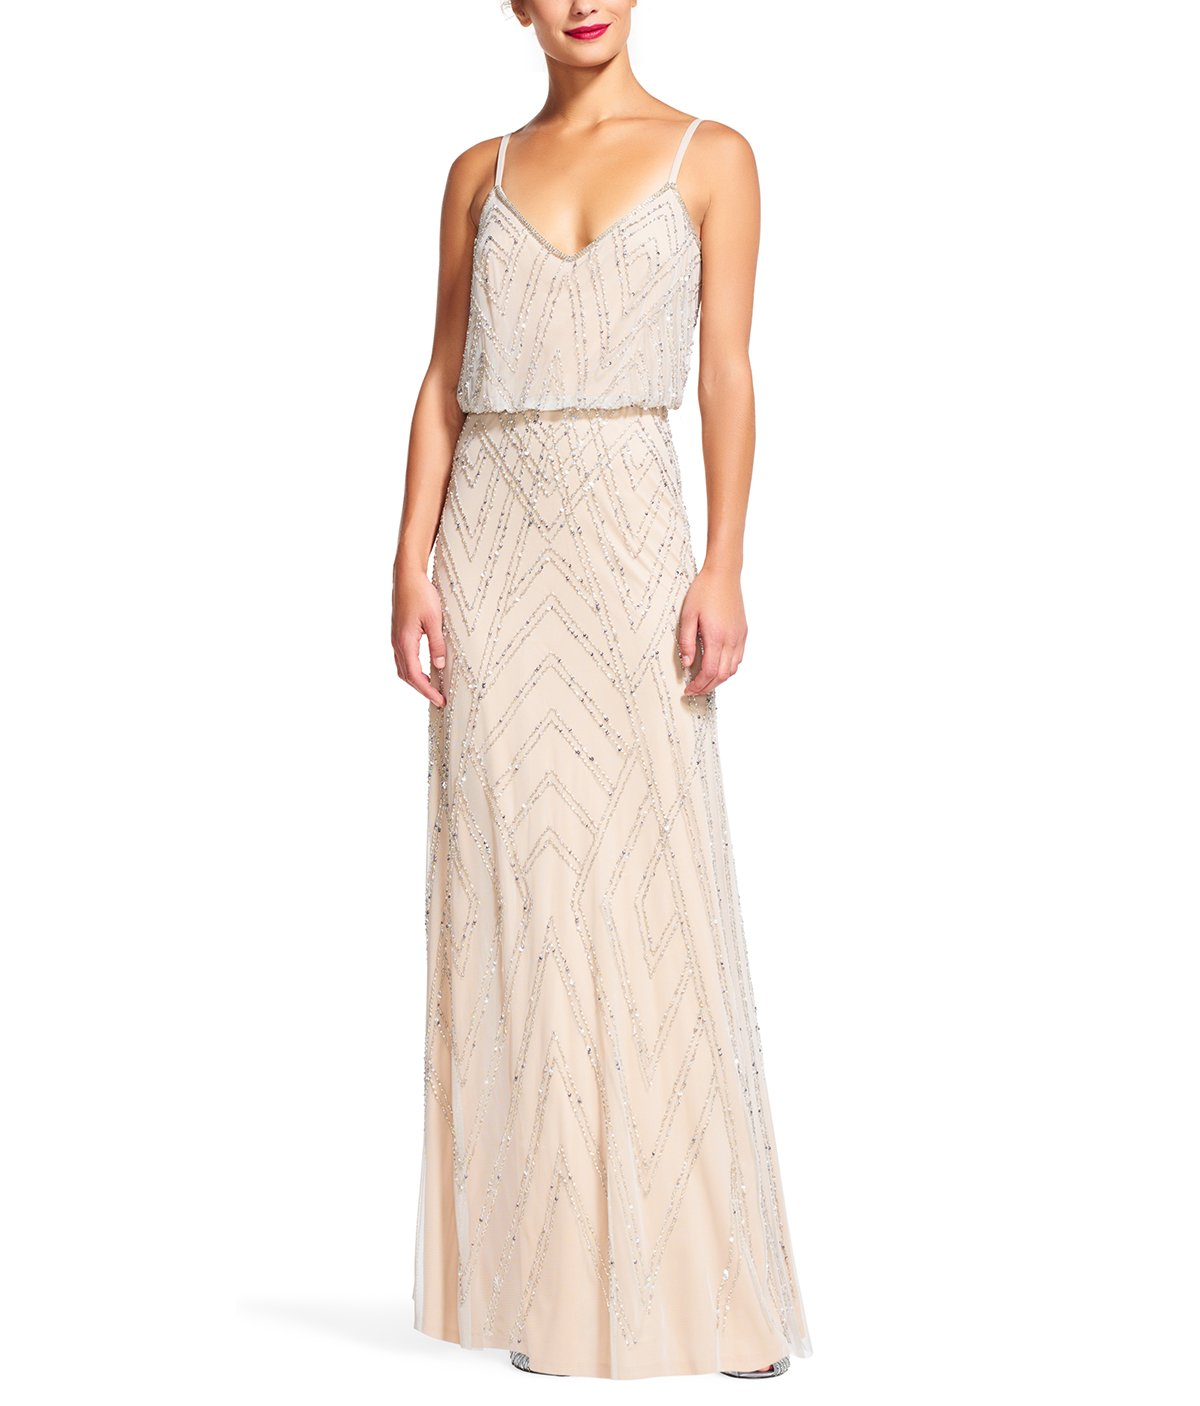 717ea7acdec Adrianna Papell Diamond Beaded Blouson Gown Bridesmaid Dress